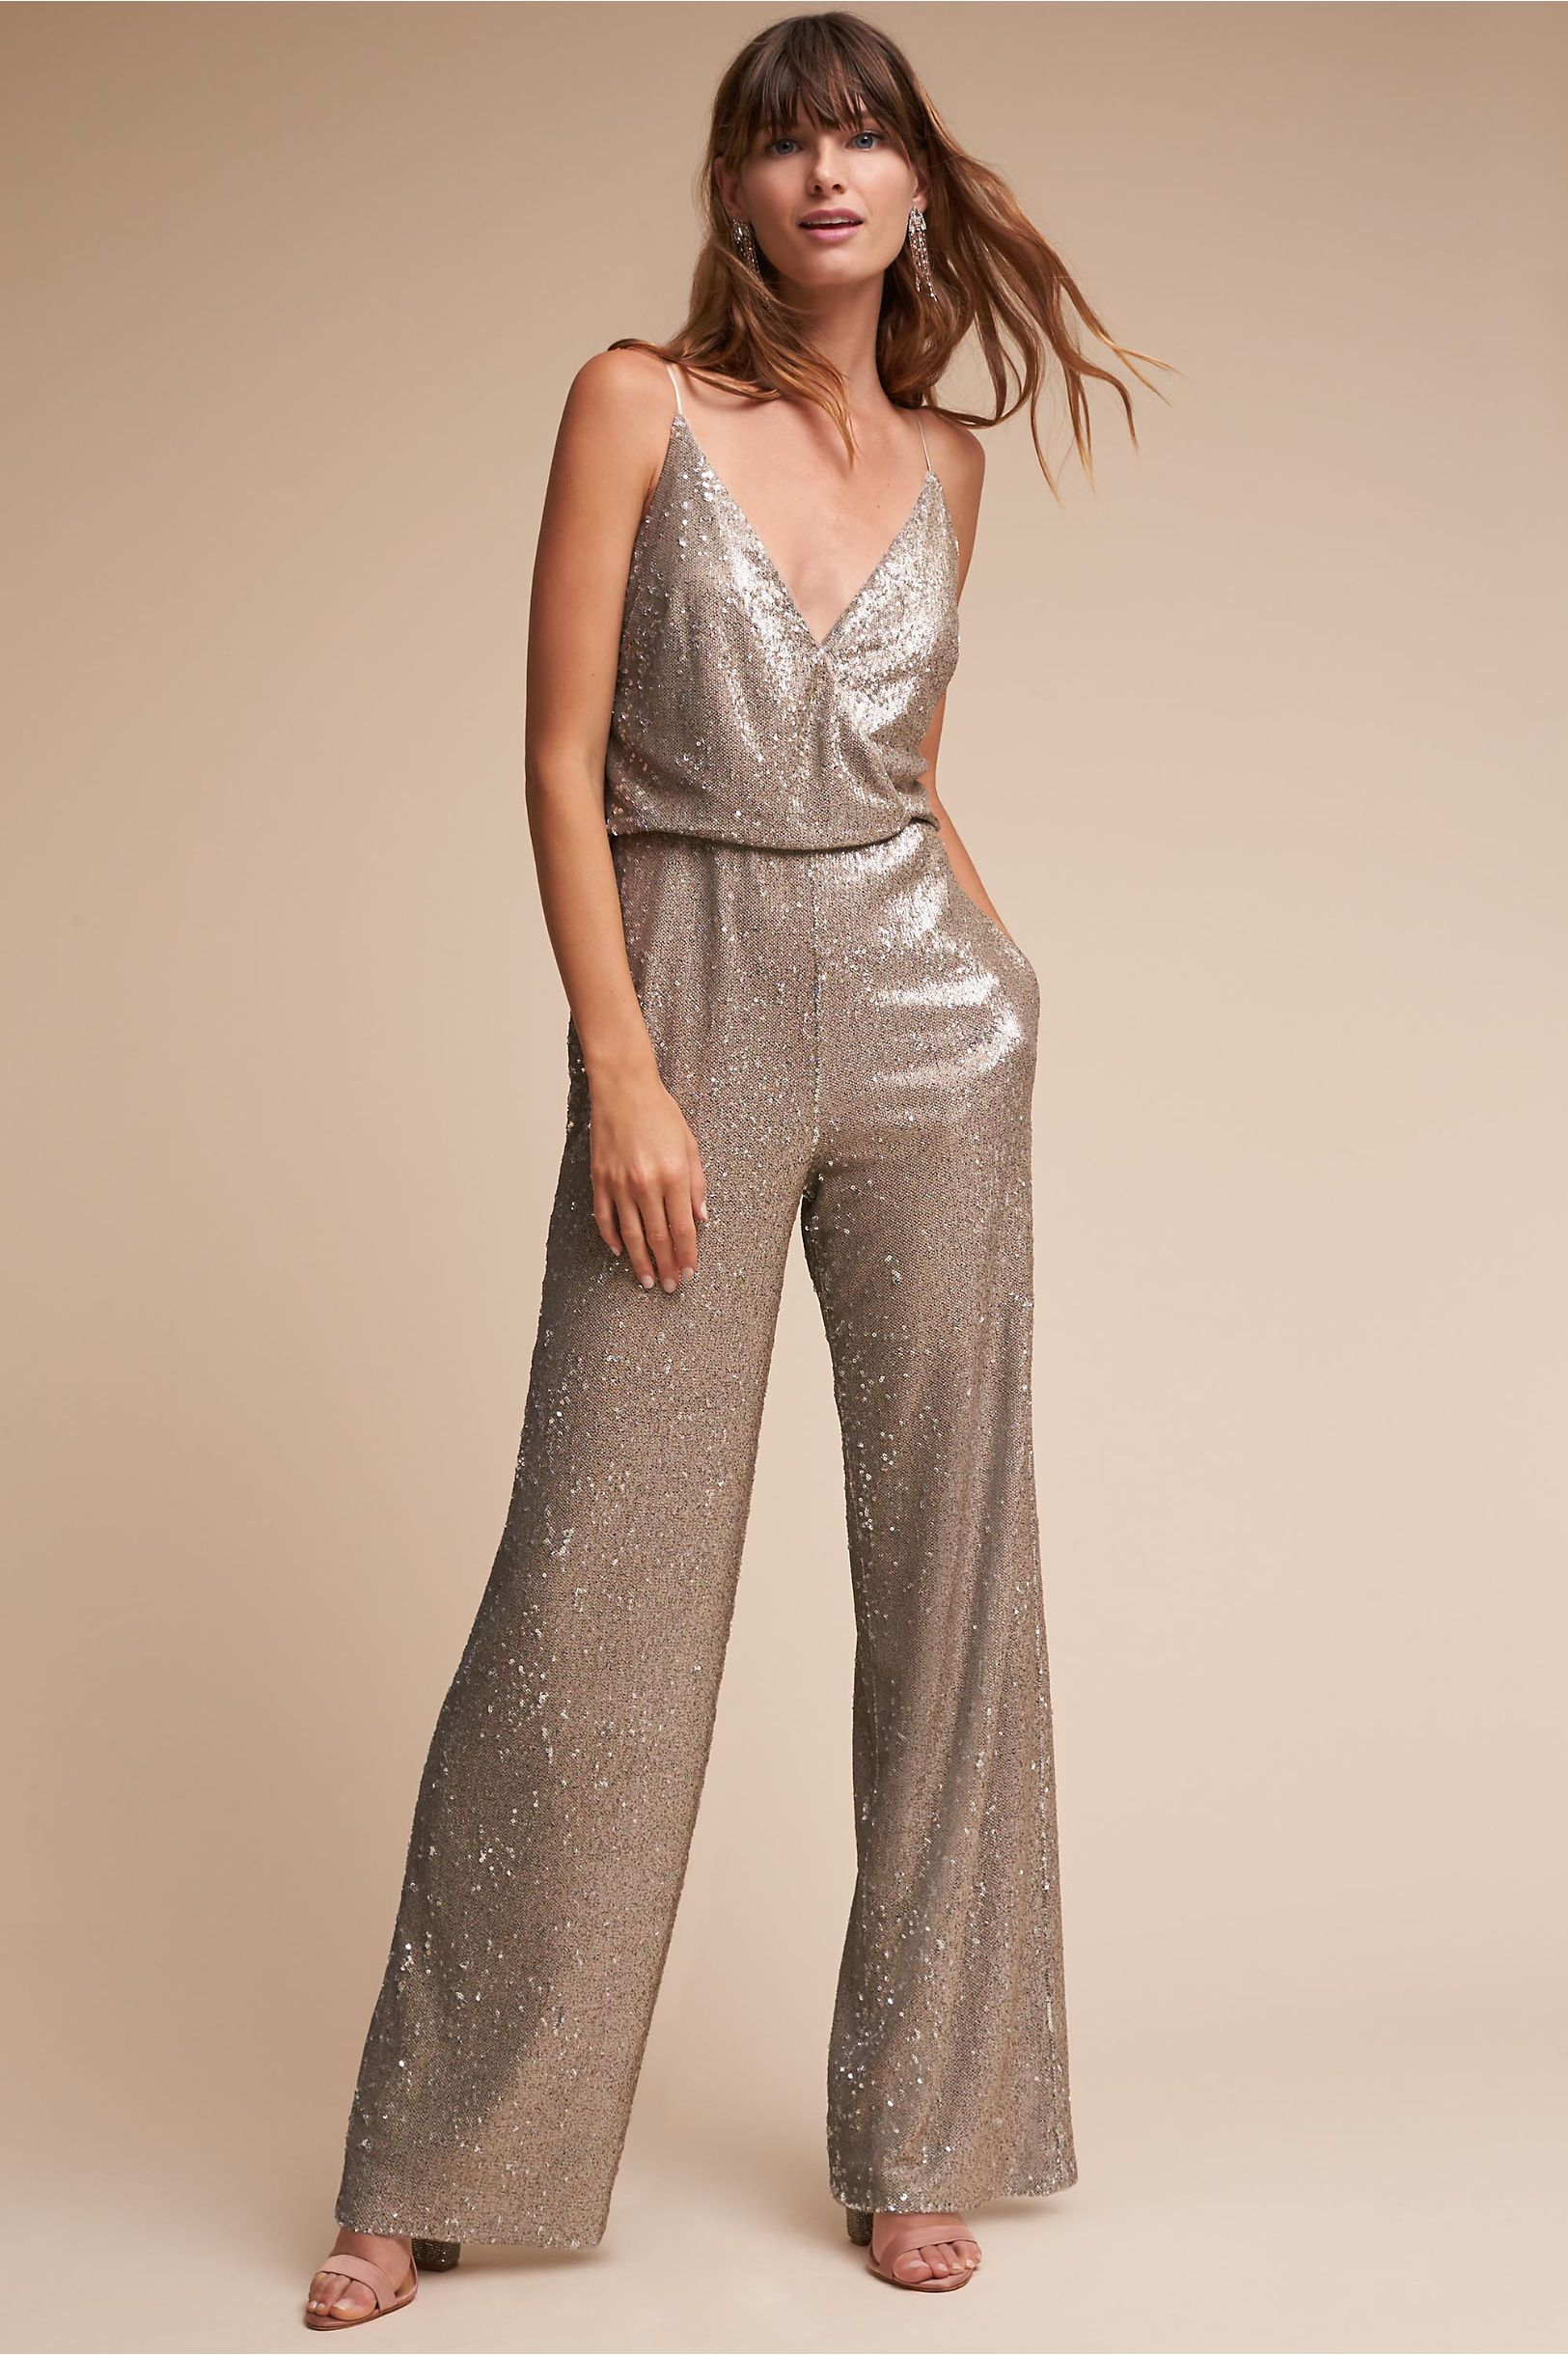 2df81cc154a9 my new reason for living- the sequin jumpsuit i will be wearing to your  wedding.